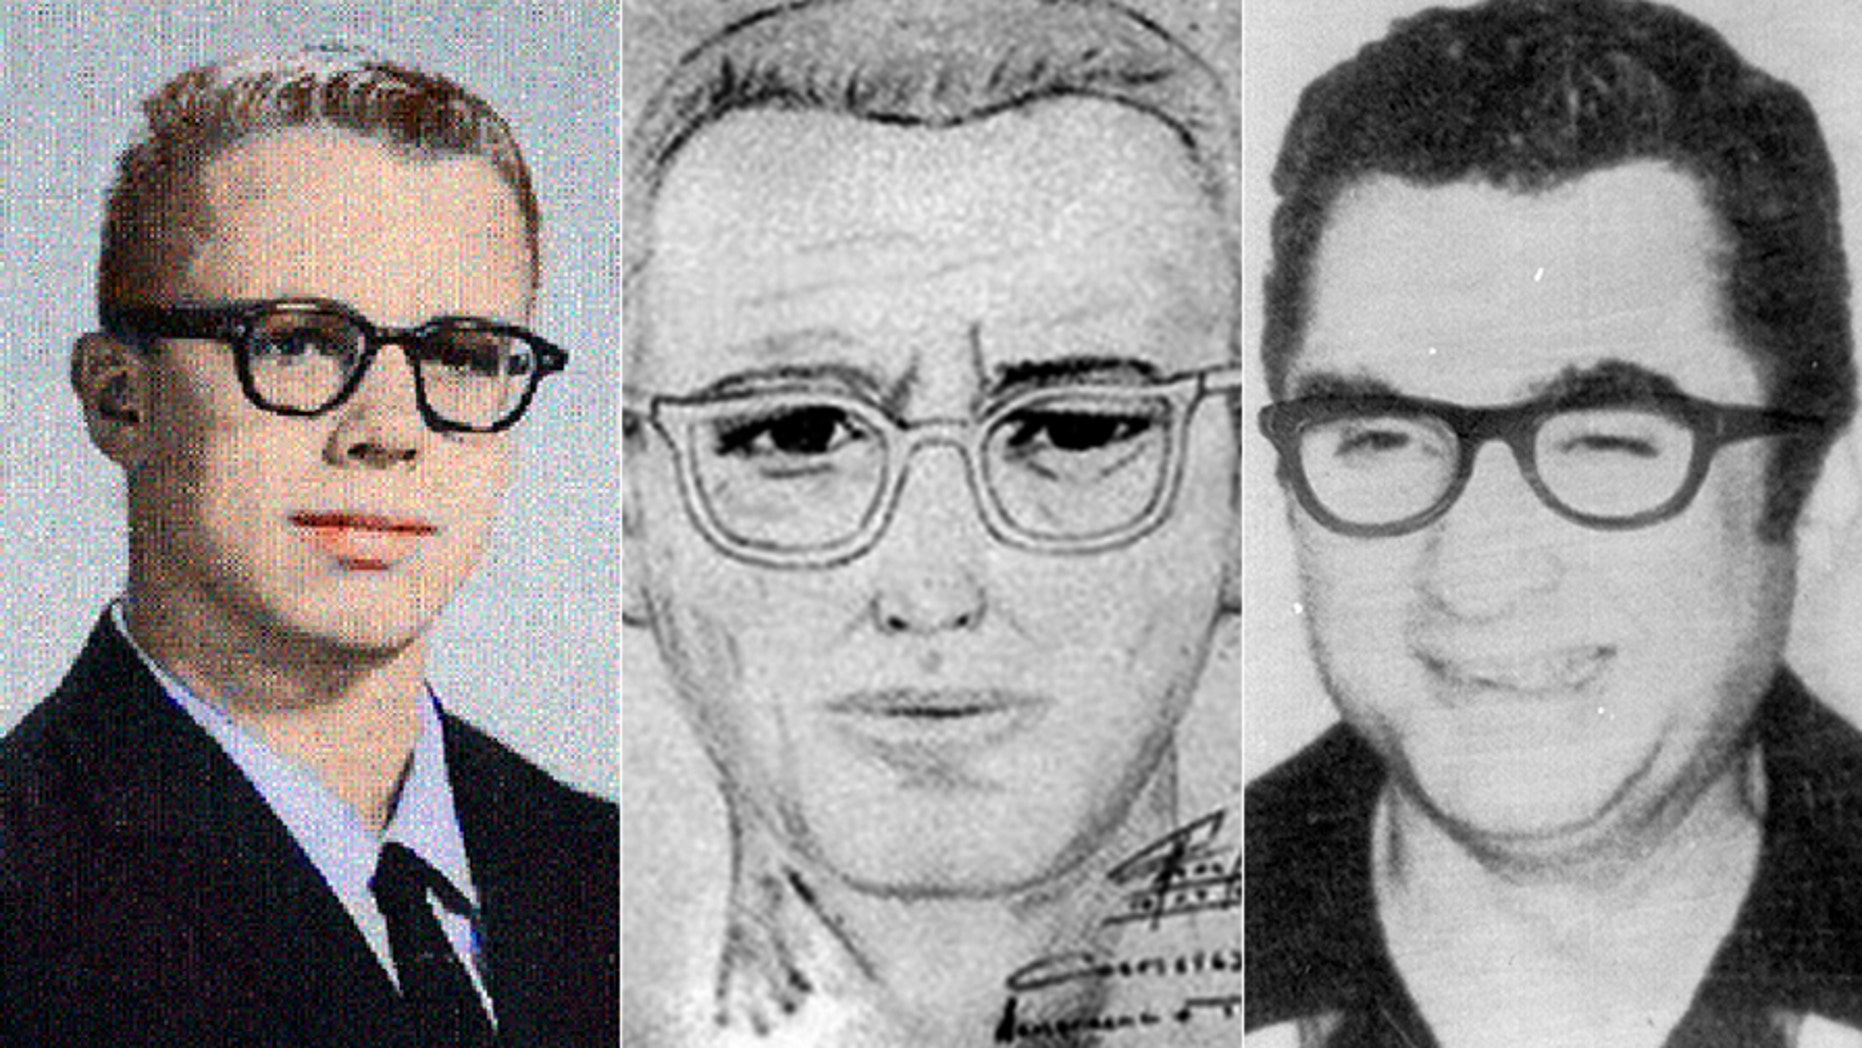 Zodiac Killer: Detectives hope DNA will unlock murderer's ID